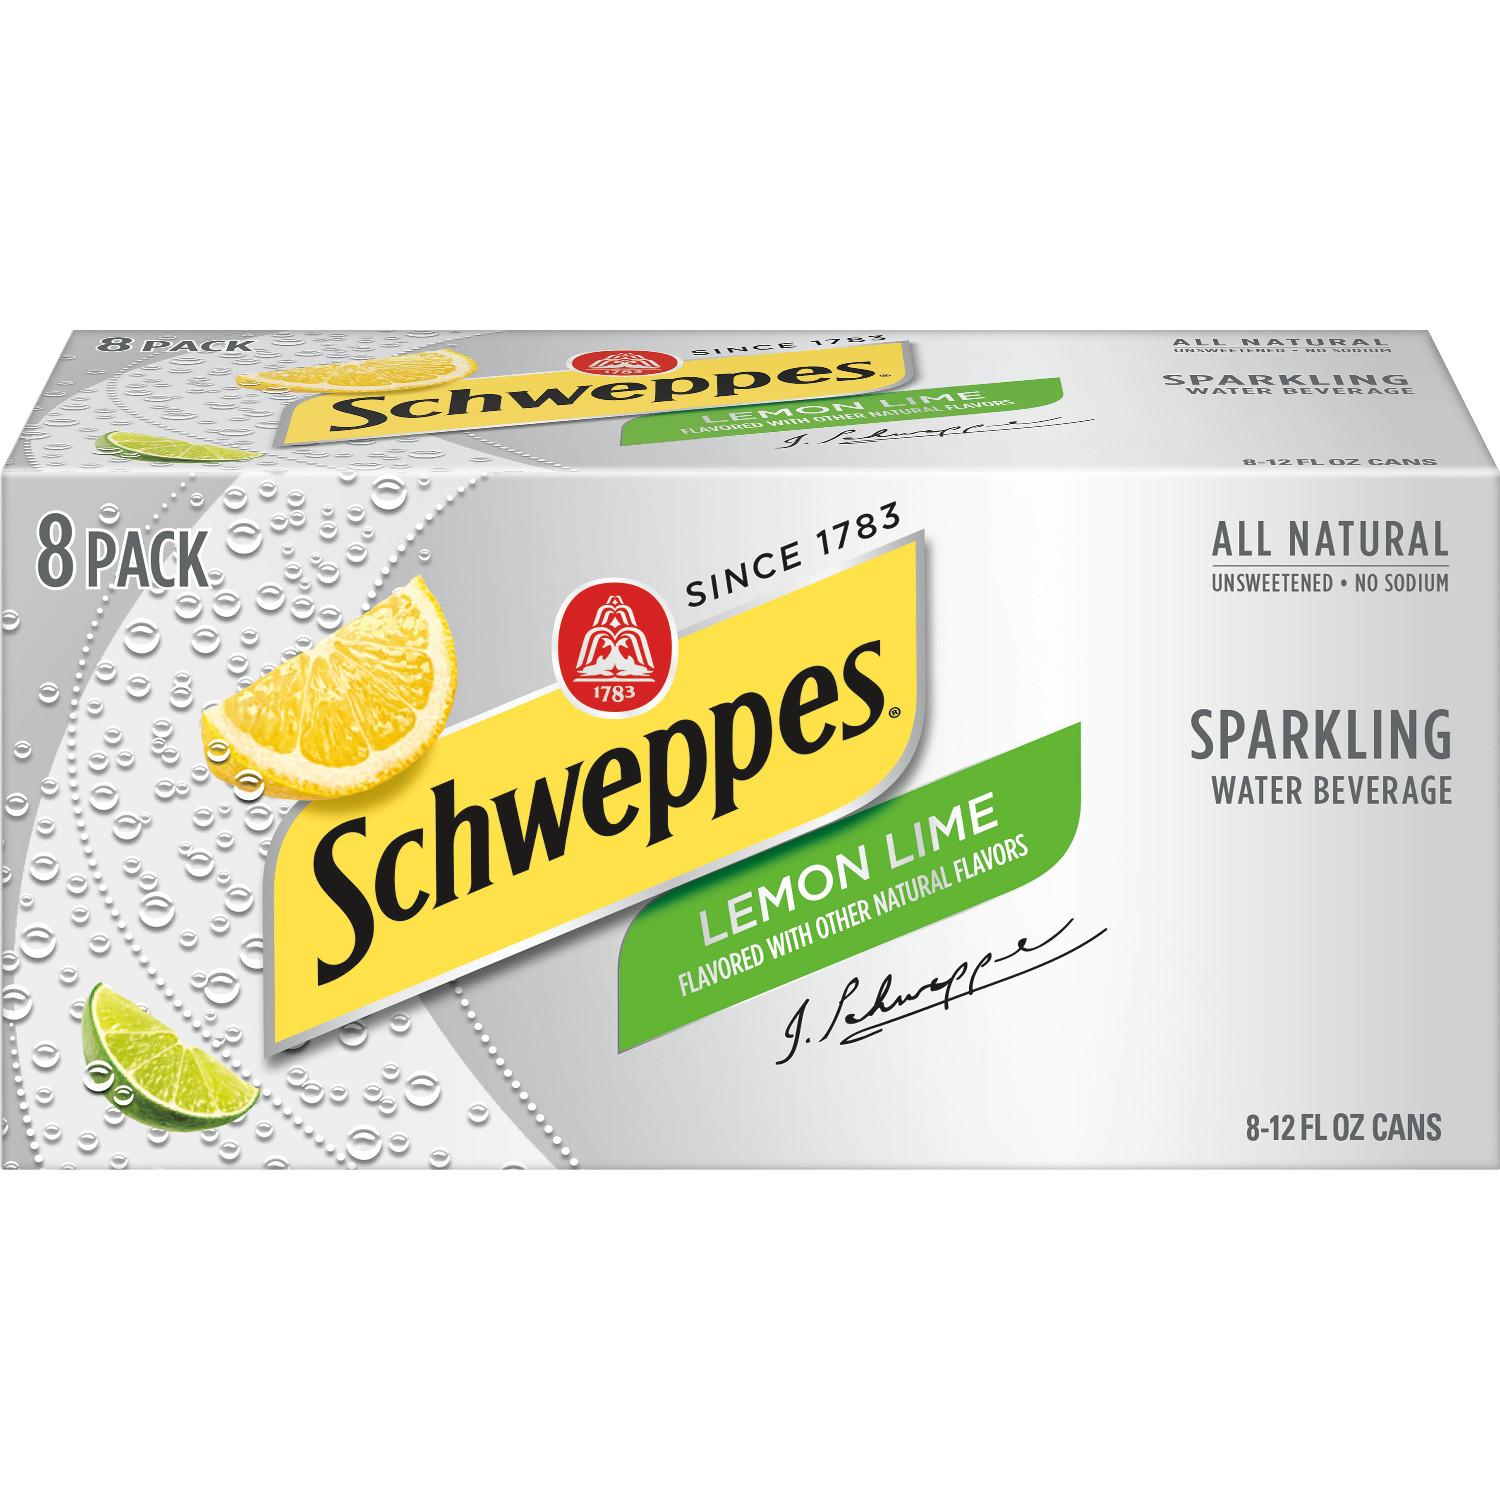 Schweppes Sparkling All Natural Lemon Lime Water, 12 Fl. Oz., 8 Count